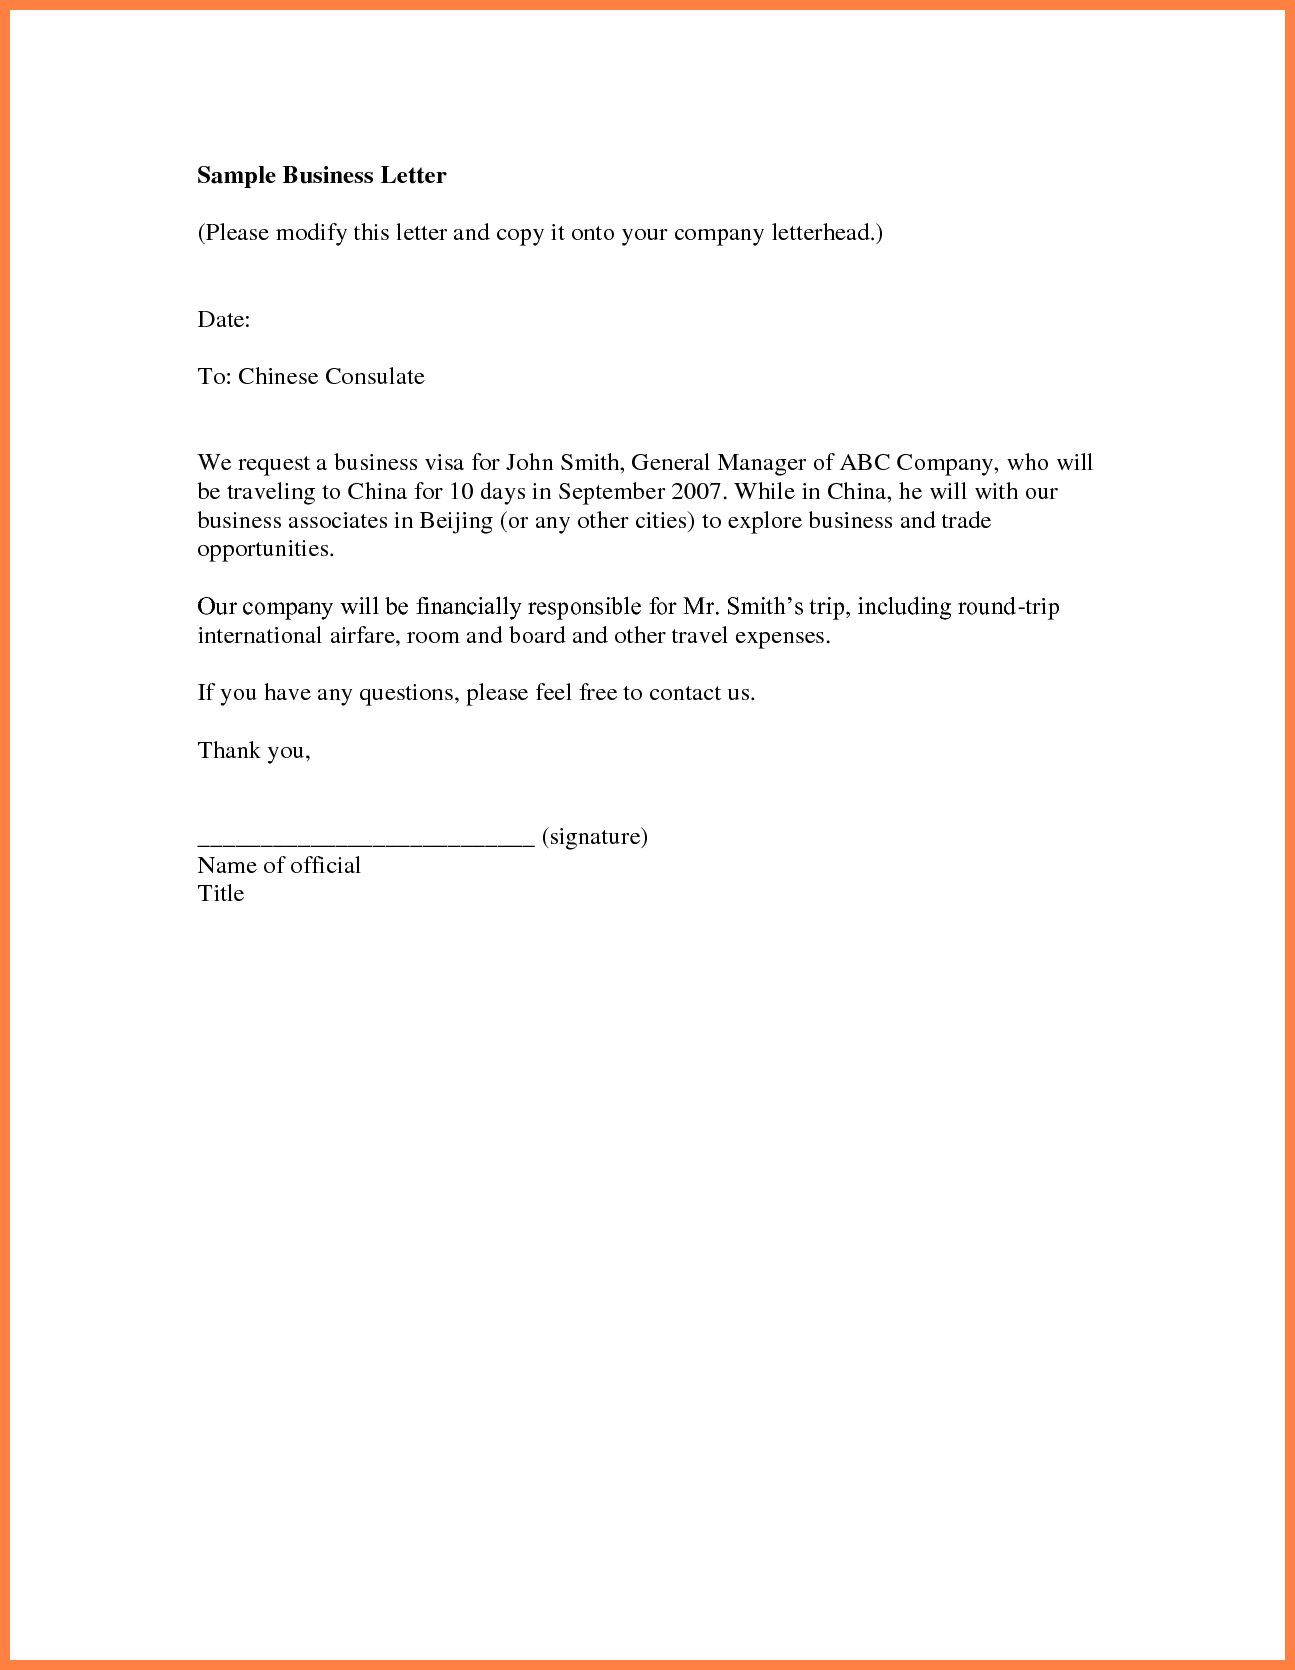 Sample Business Letter of Introduction